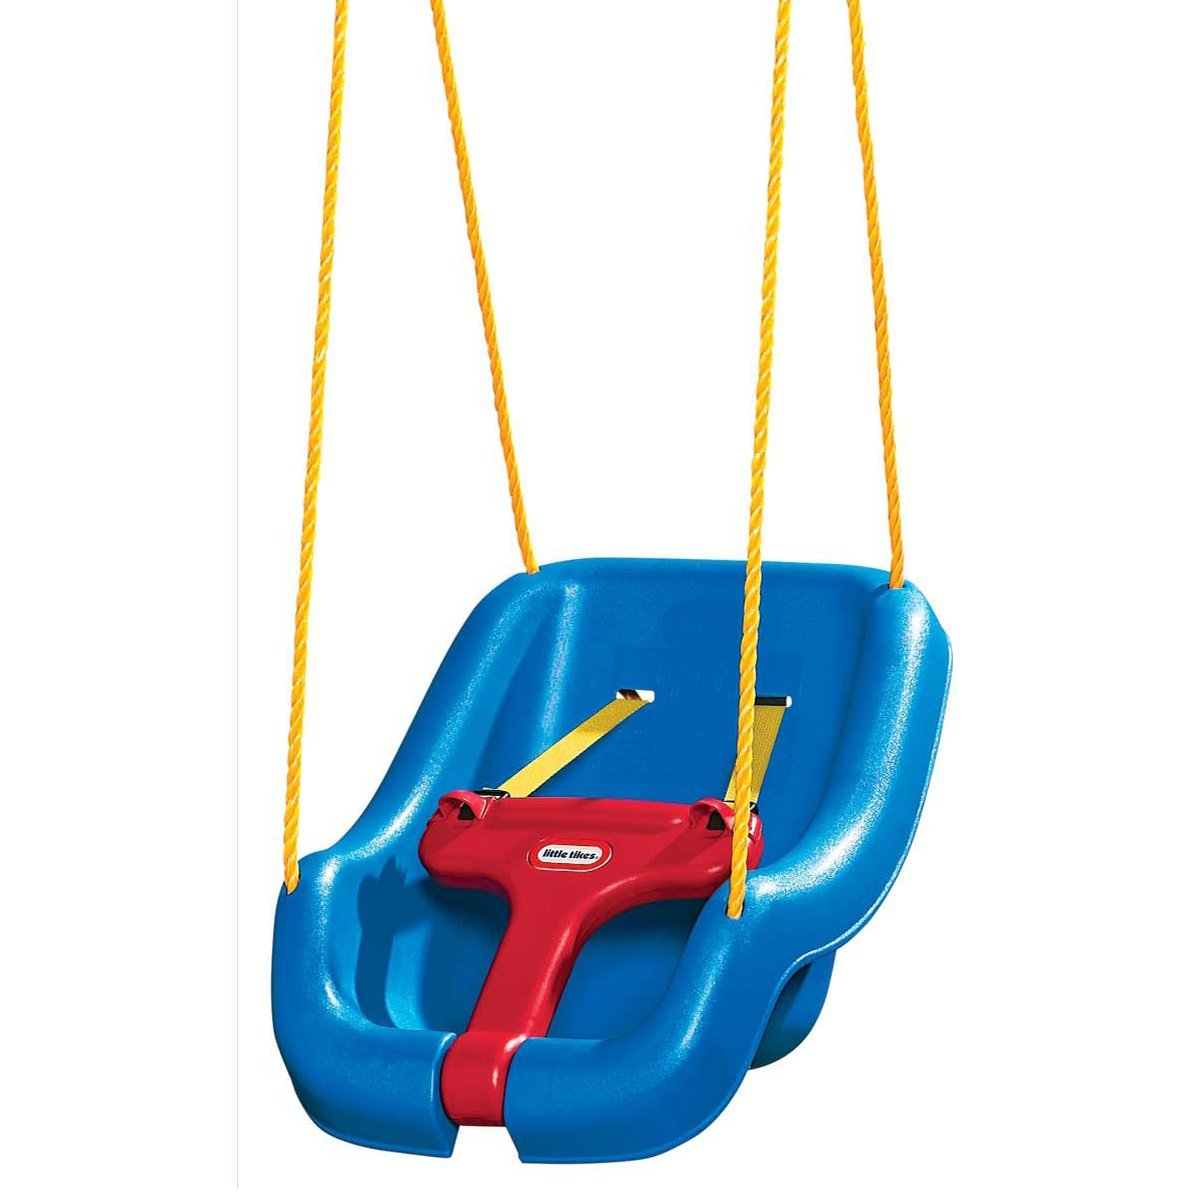 Safe And Secure Toddler Swing Baby Outdoor Tree Swing By